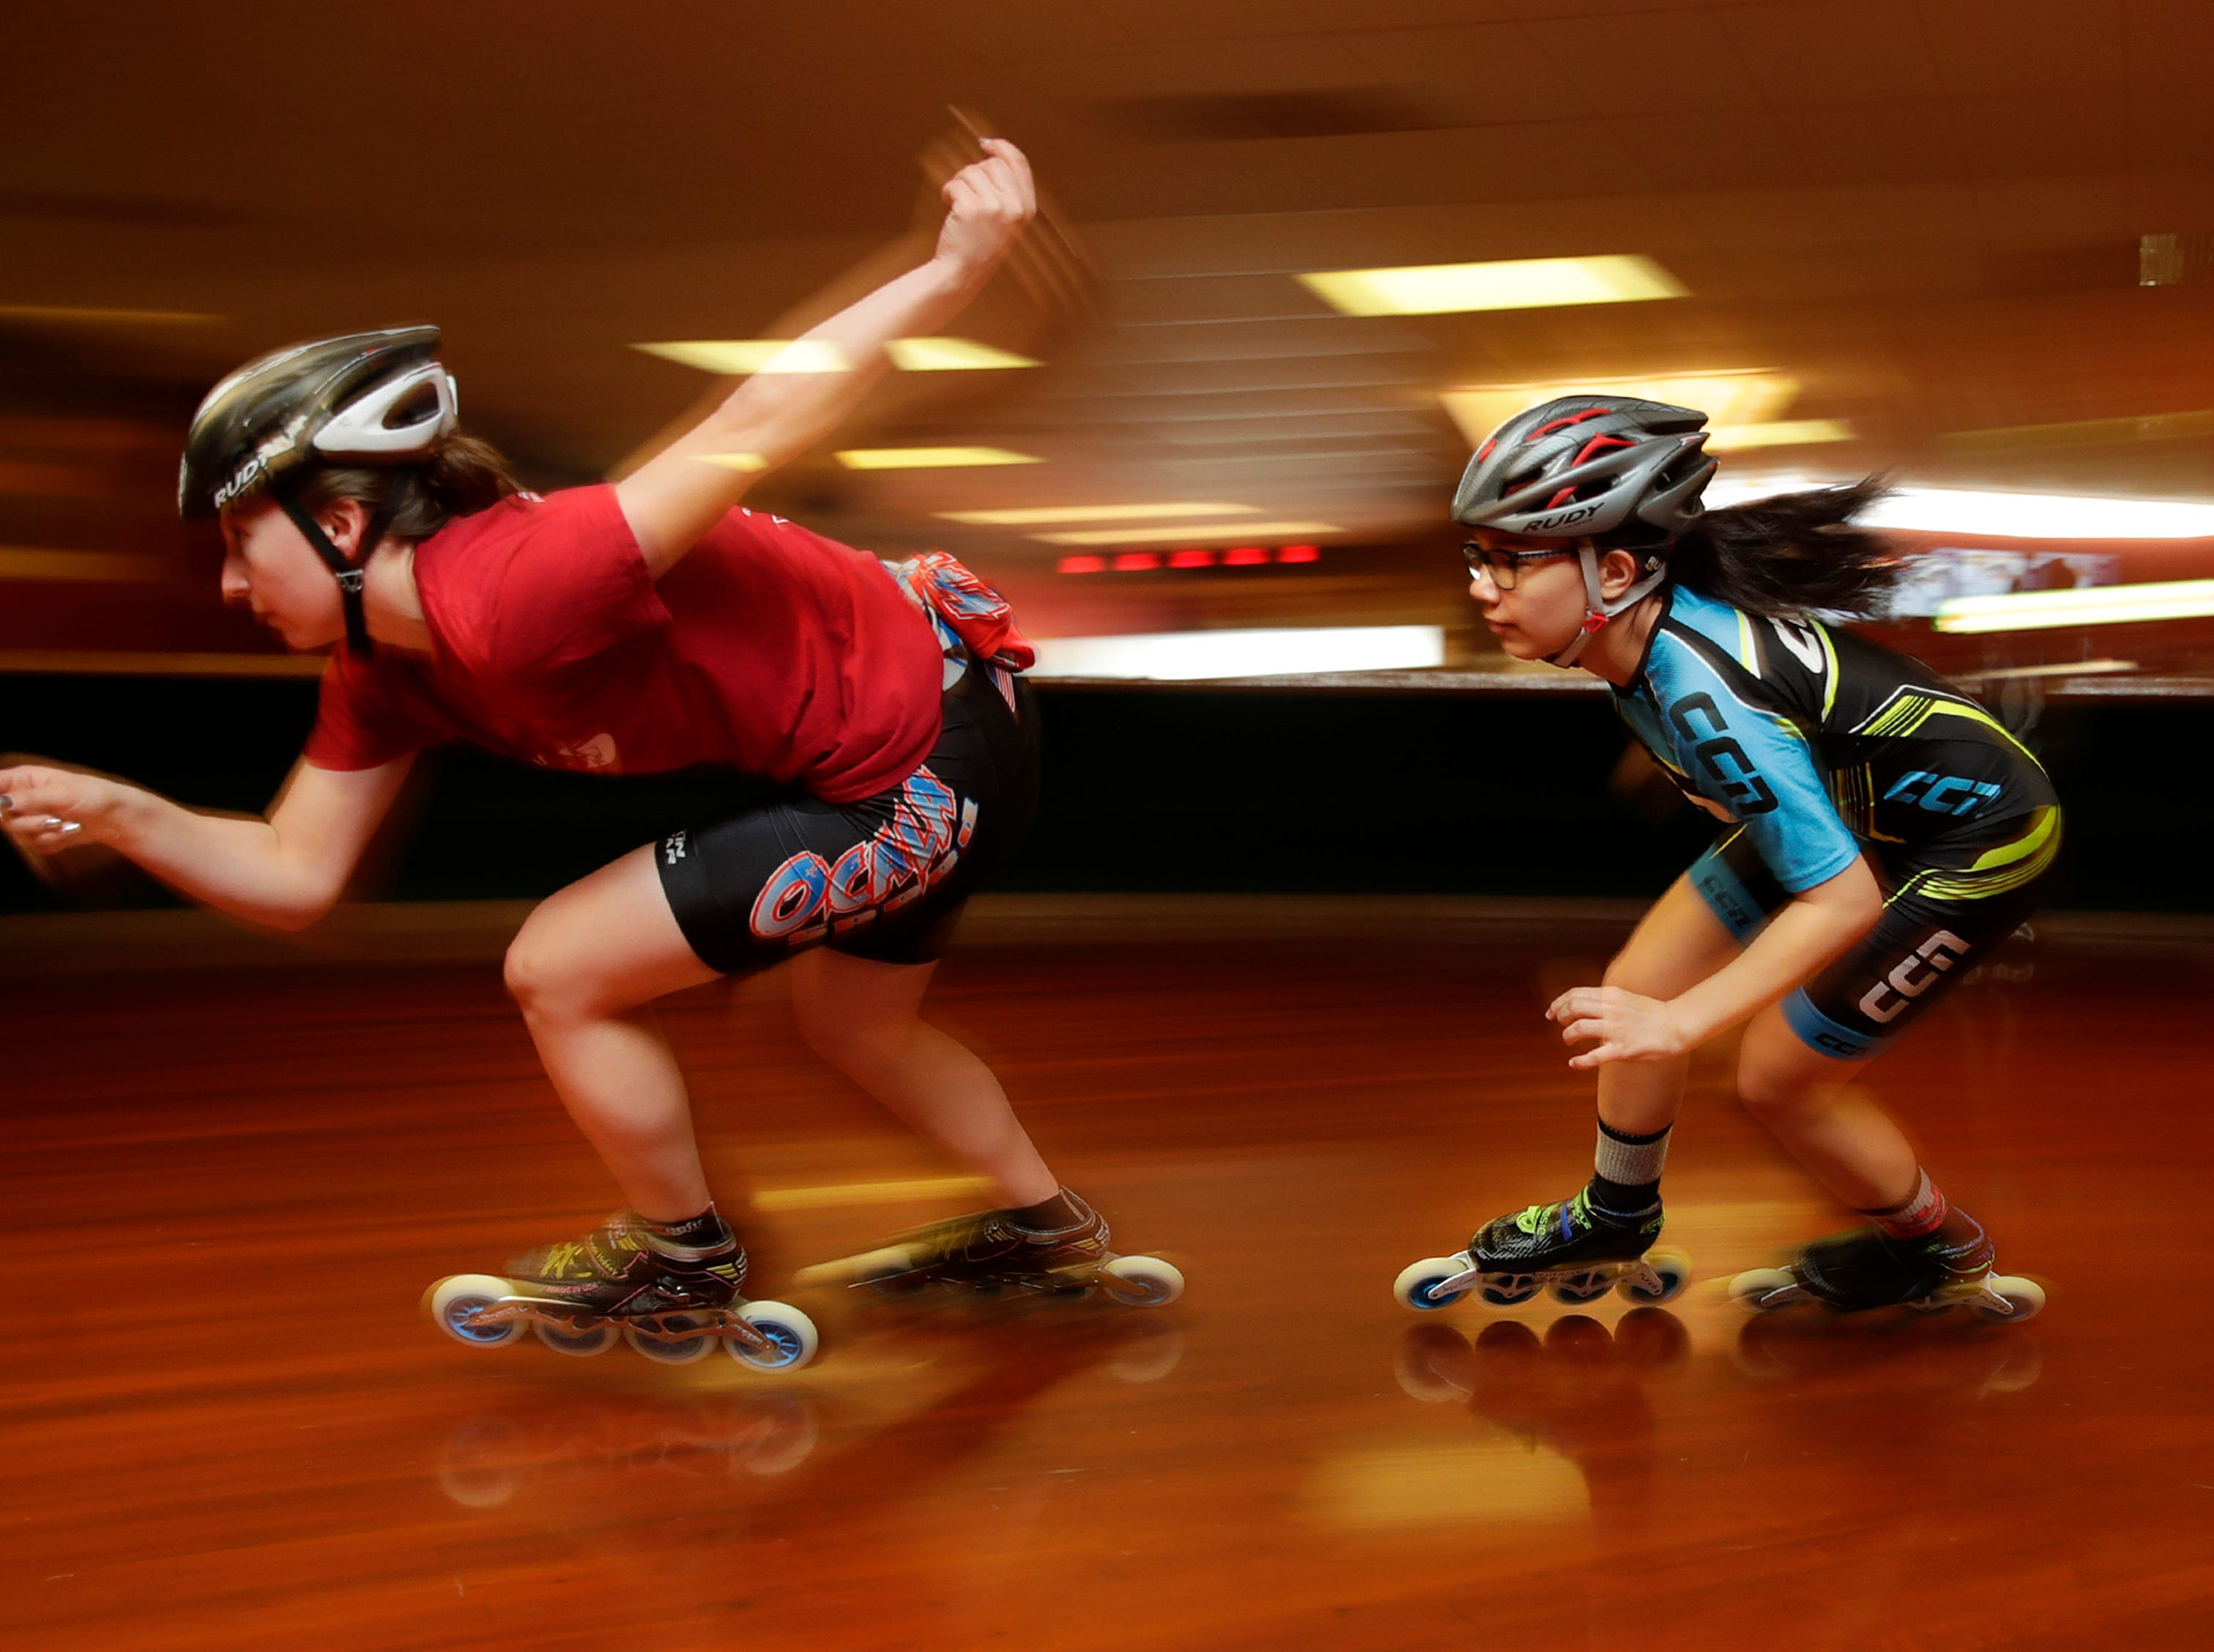 Miranda Halsey, 19, of Appleton, works on a two person corner blast with Cassie Gerdin, 12, of Appleton, while preparing for the 2018 USA Roller Sports Speed Skating National Championships Wednesday, July 11, 2018, at Skate City in Kimberly, Wis. 